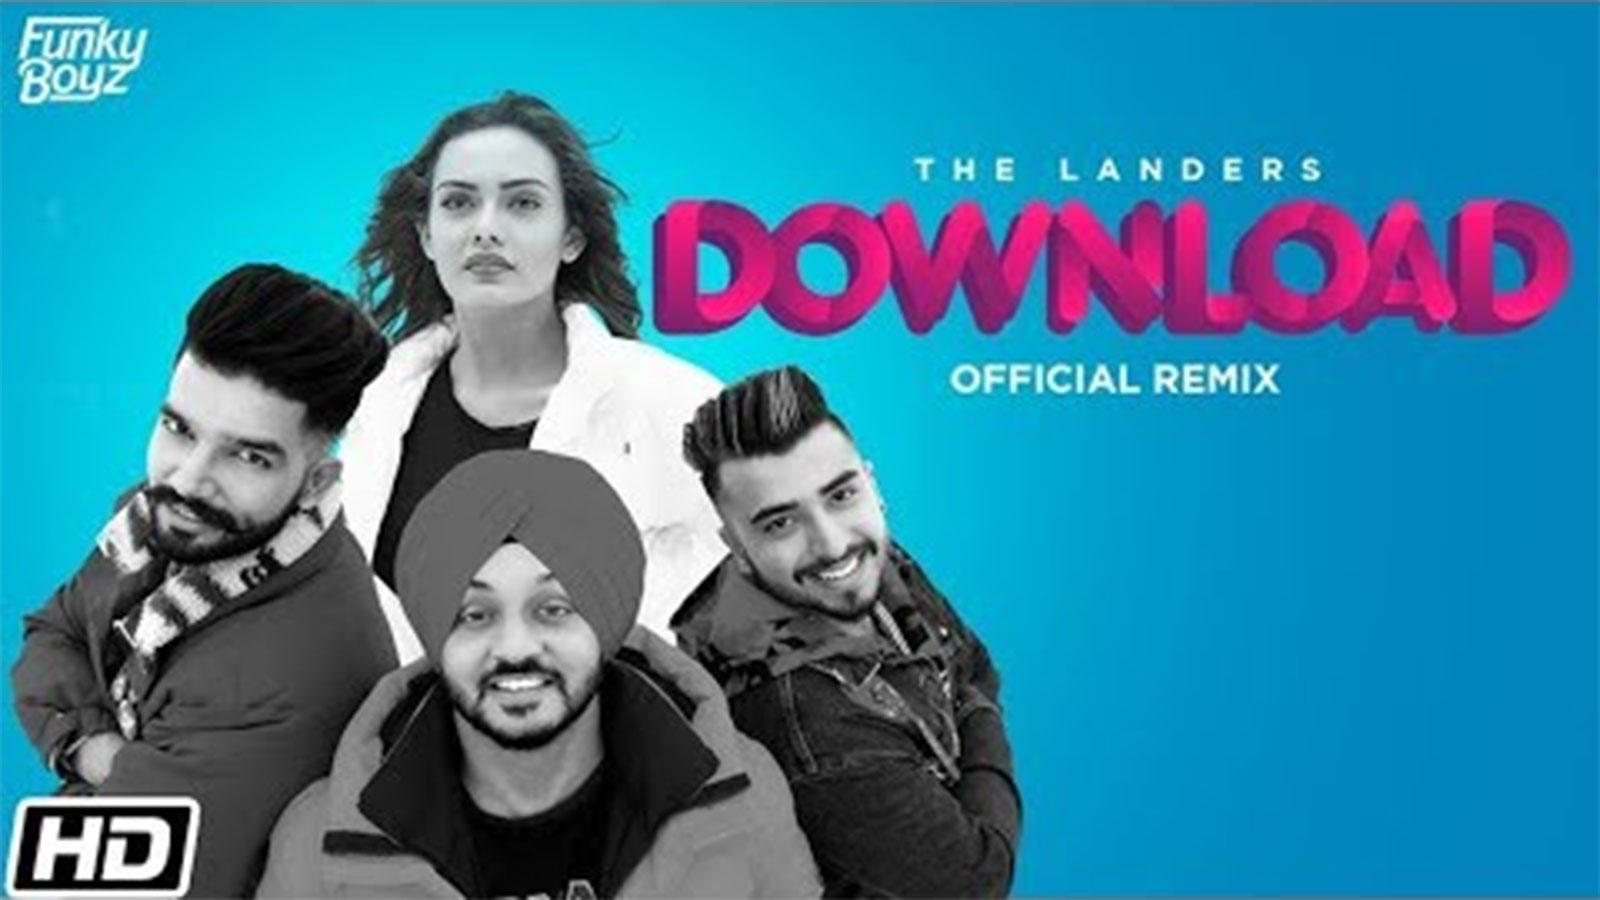 Latest Punjabi Song 'Download' (Remix) Sung By The Landers Featuring Gurlez  Akhtar | Punjabi Video Songs - Times of India